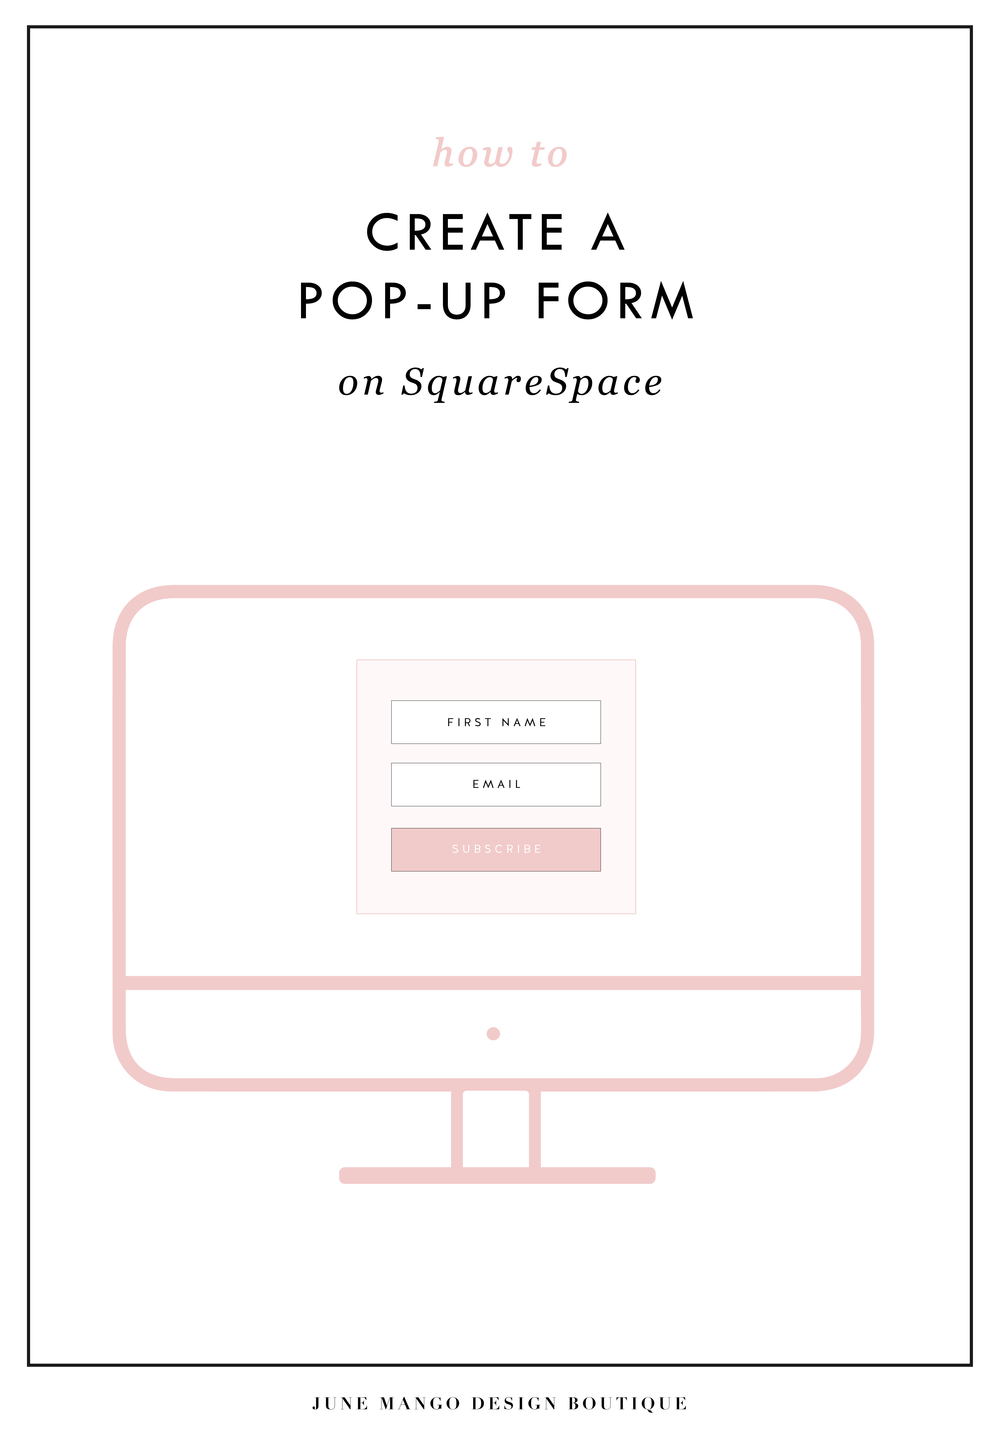 How-to-CREATE-A-POP-UP-FORM-on-squarespace-blog-01.png